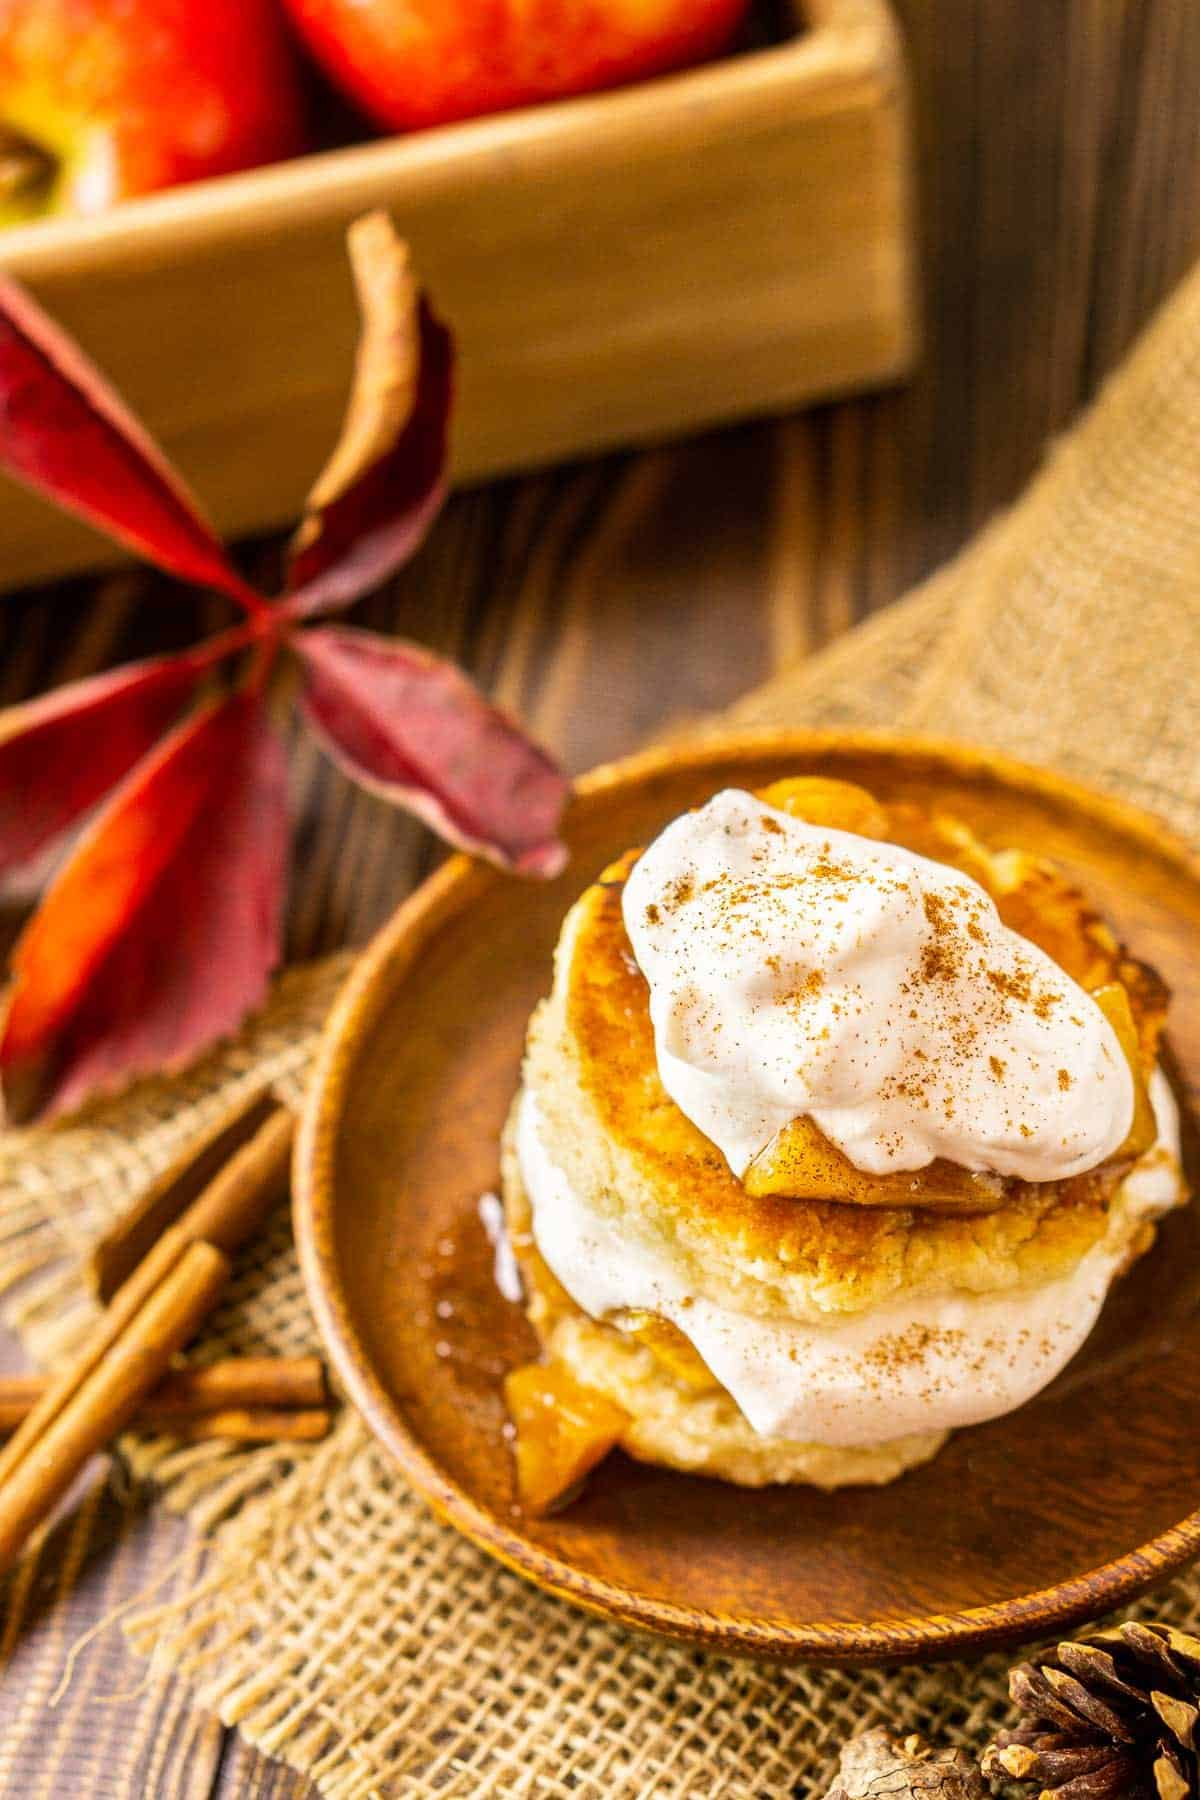 An aerial view of the apple shortcakes with a fall leaf to the side.